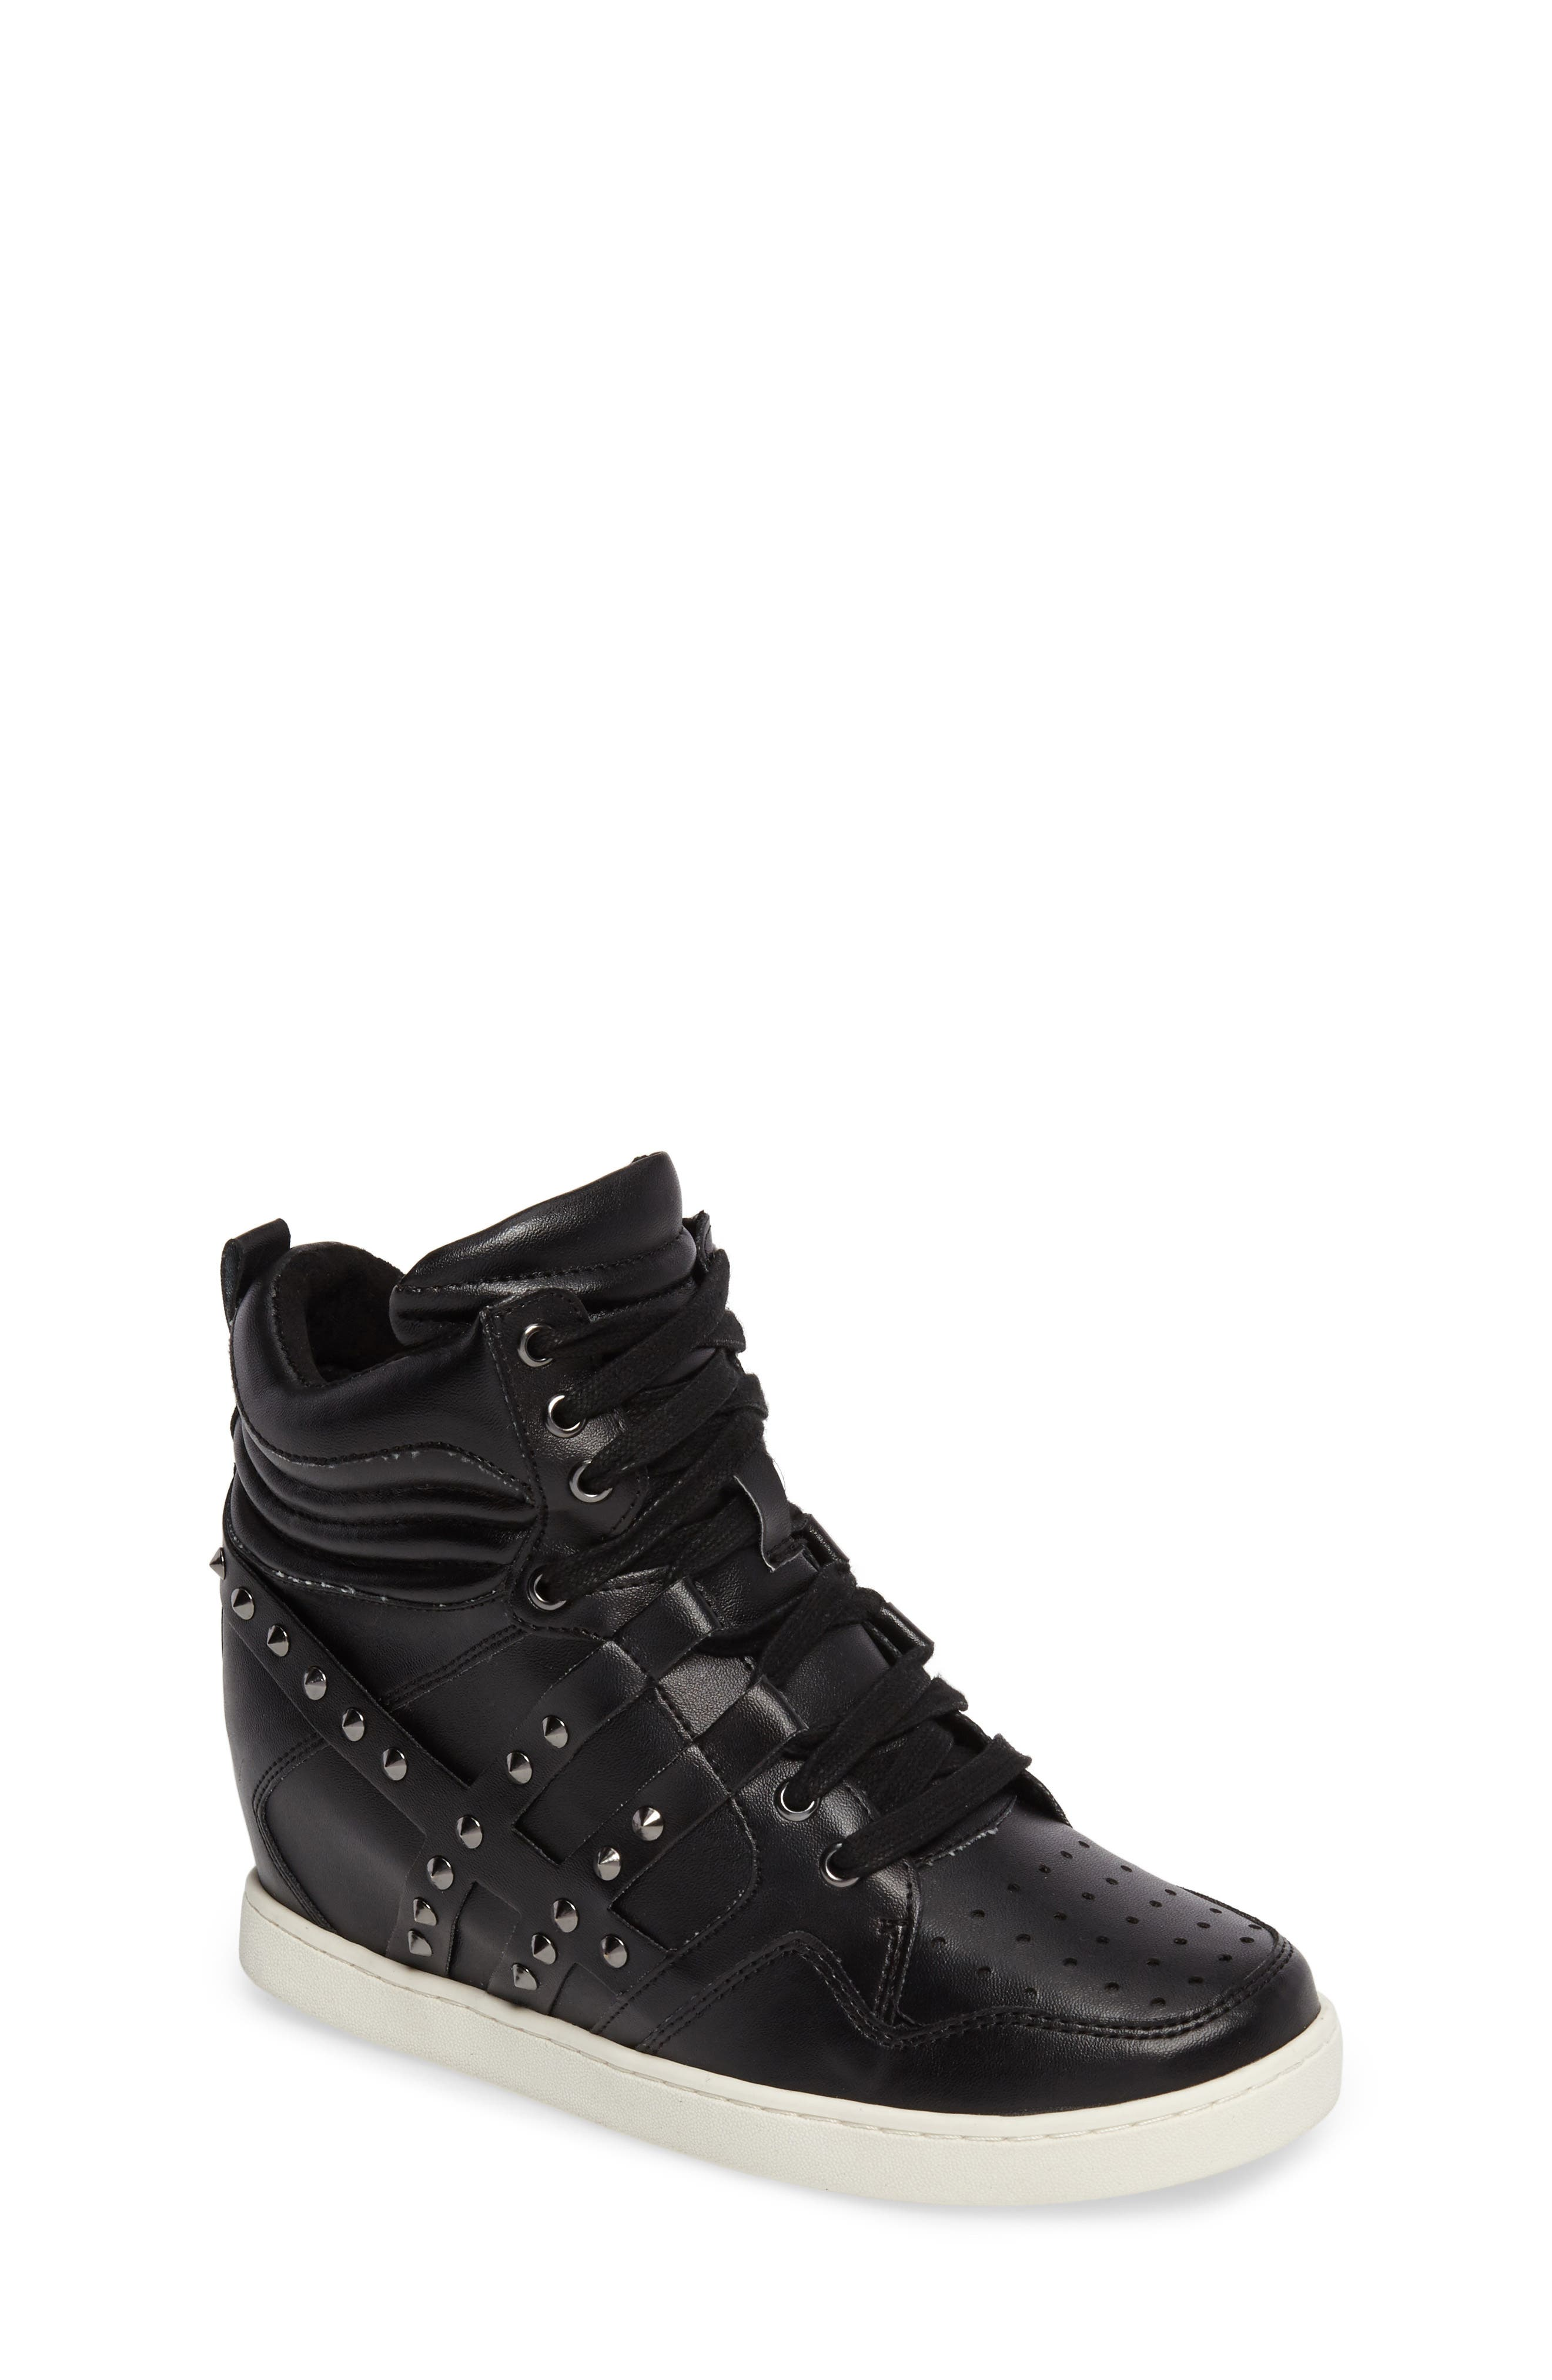 Ash Boogie Chic Studded High Top Sneaker (Toddler, Little Kid & Big Kid)